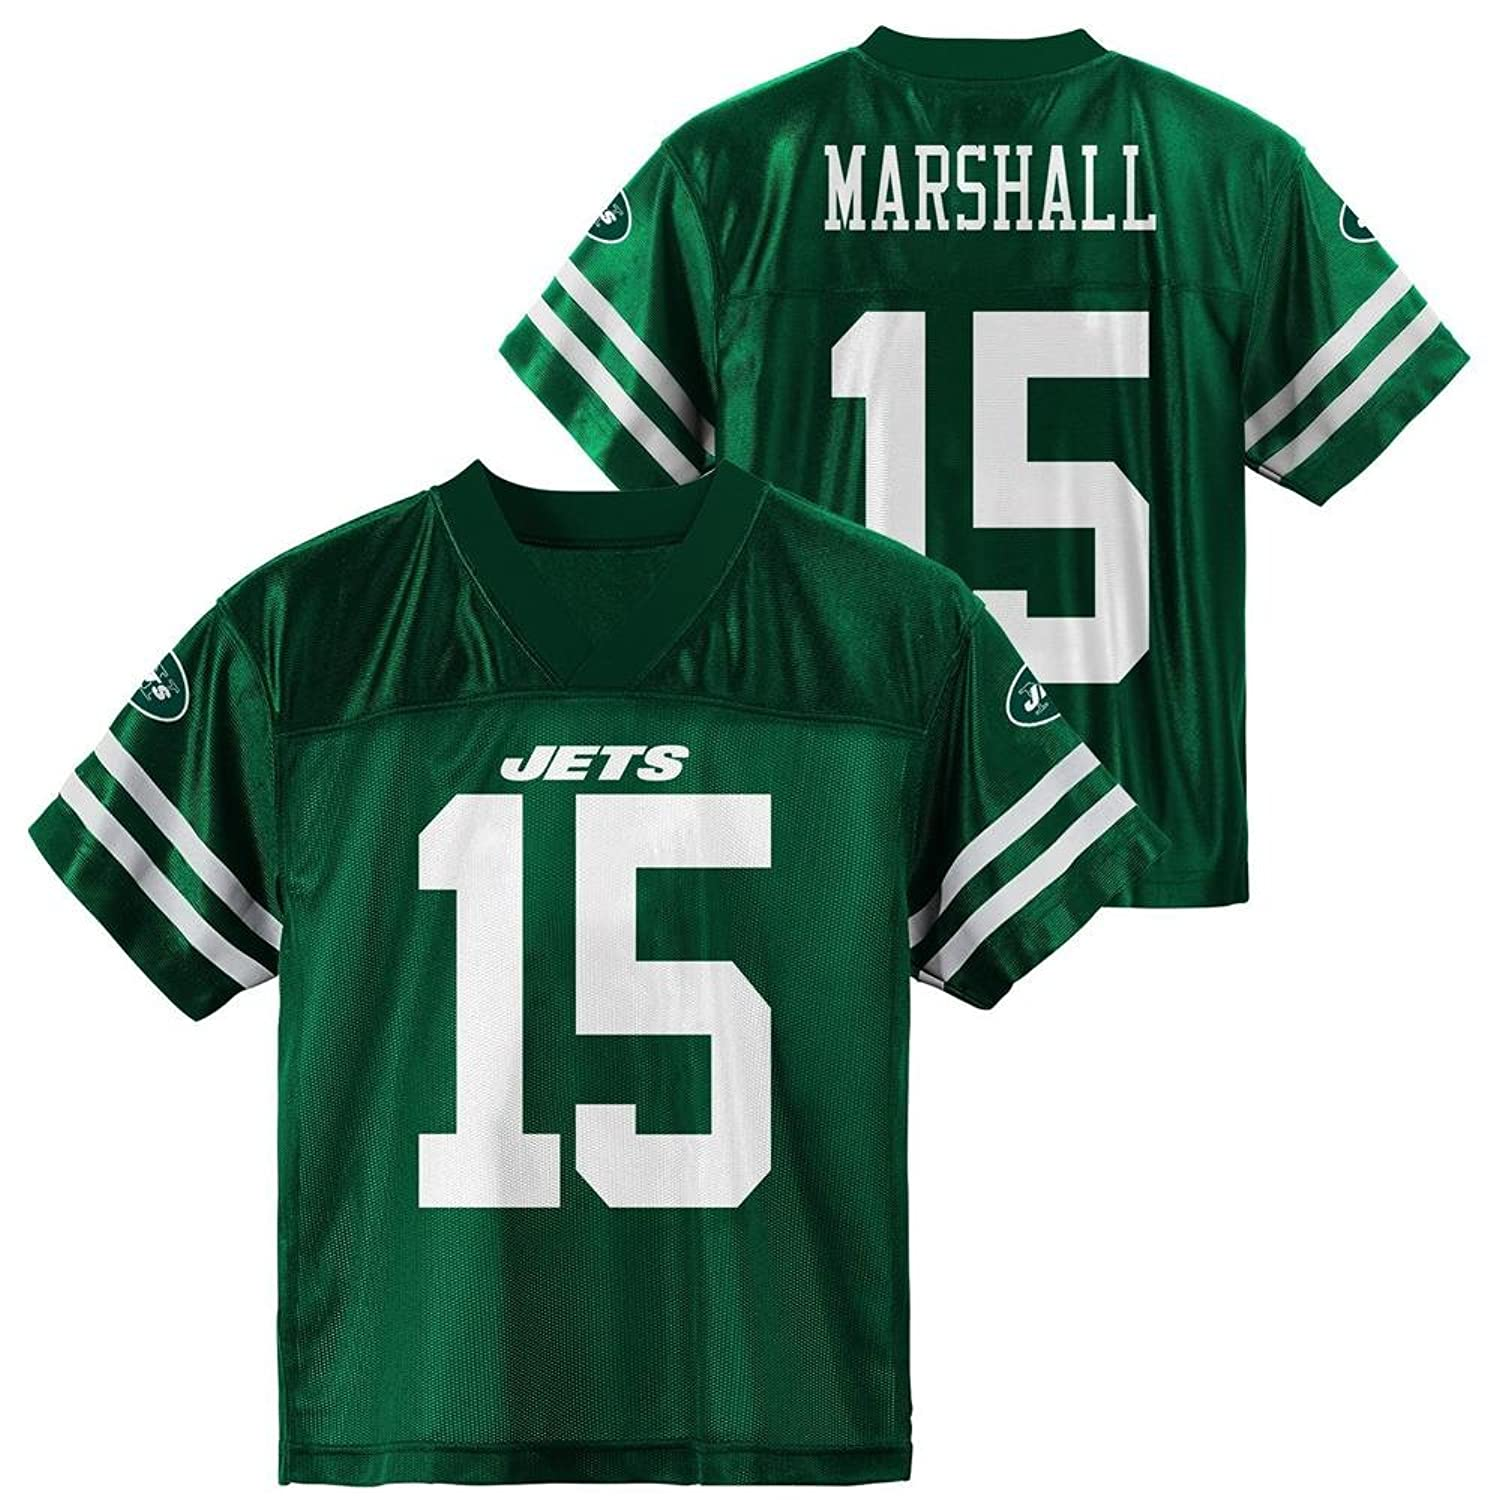 Wholesale Brandon Marshall New York Jets Green Home Player Jersey Toddler free shipping